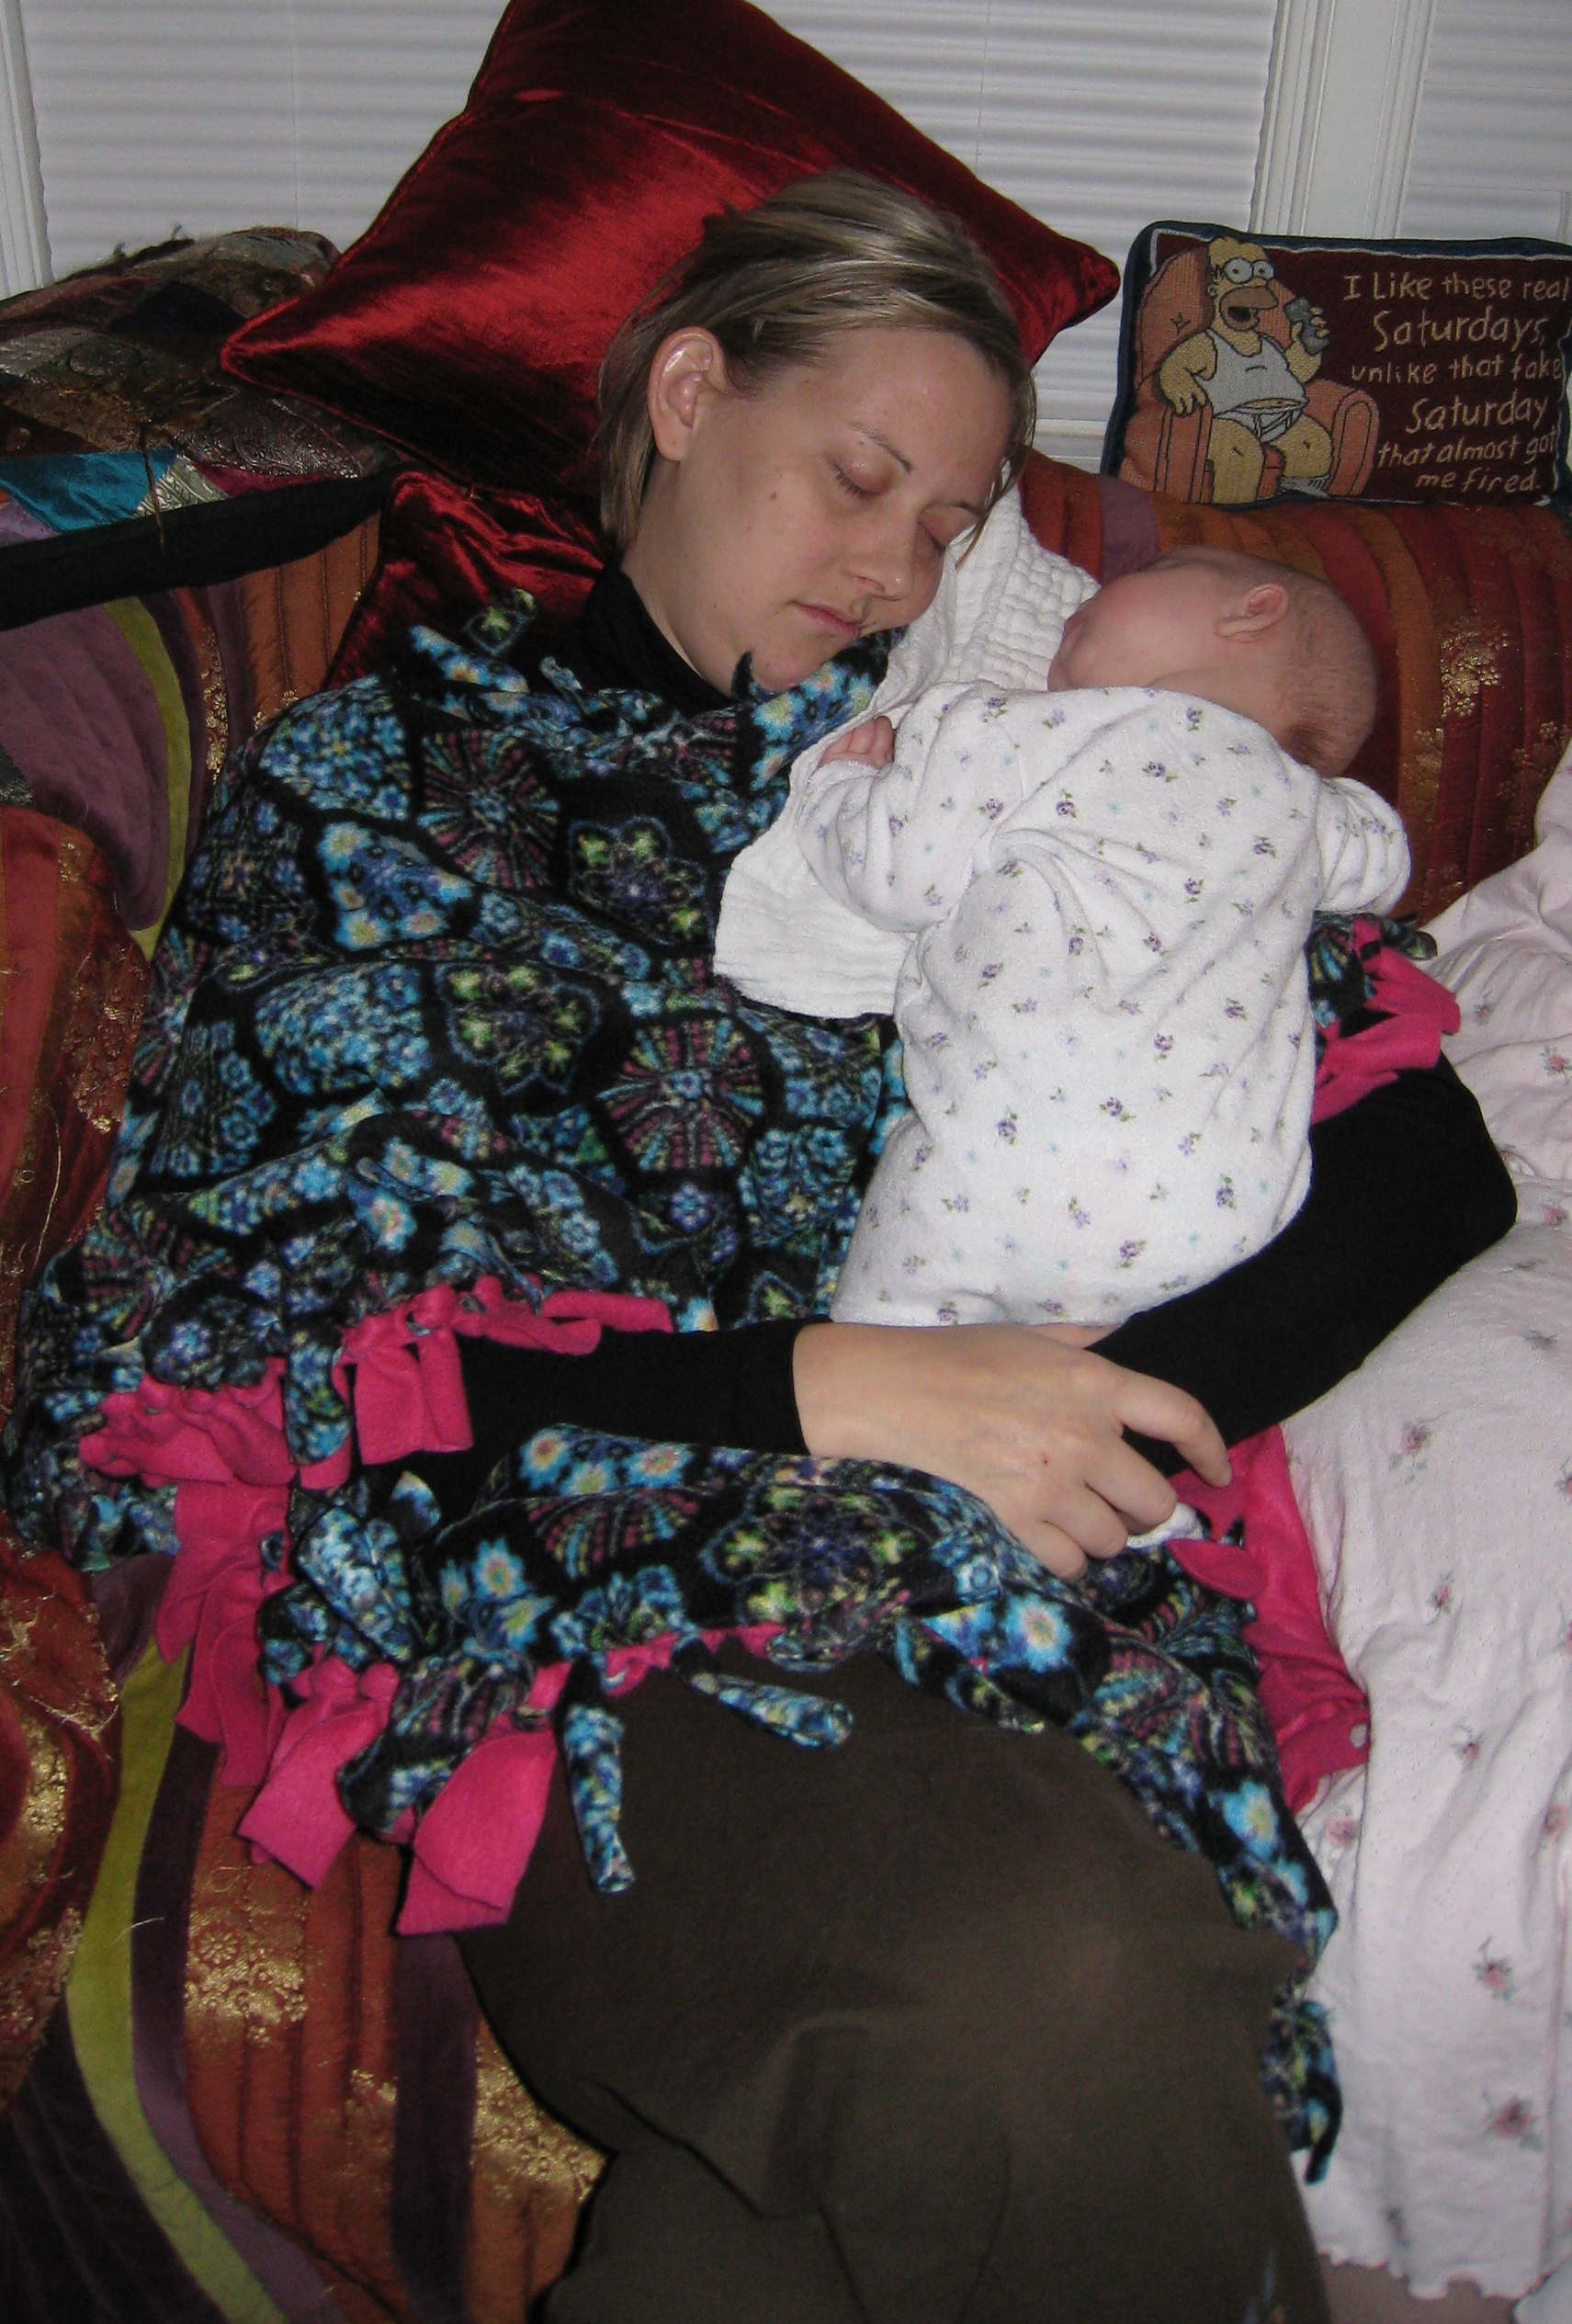 suspiciously-taken-pic-of-aunt-la-cuddling-with-kivrin-112708